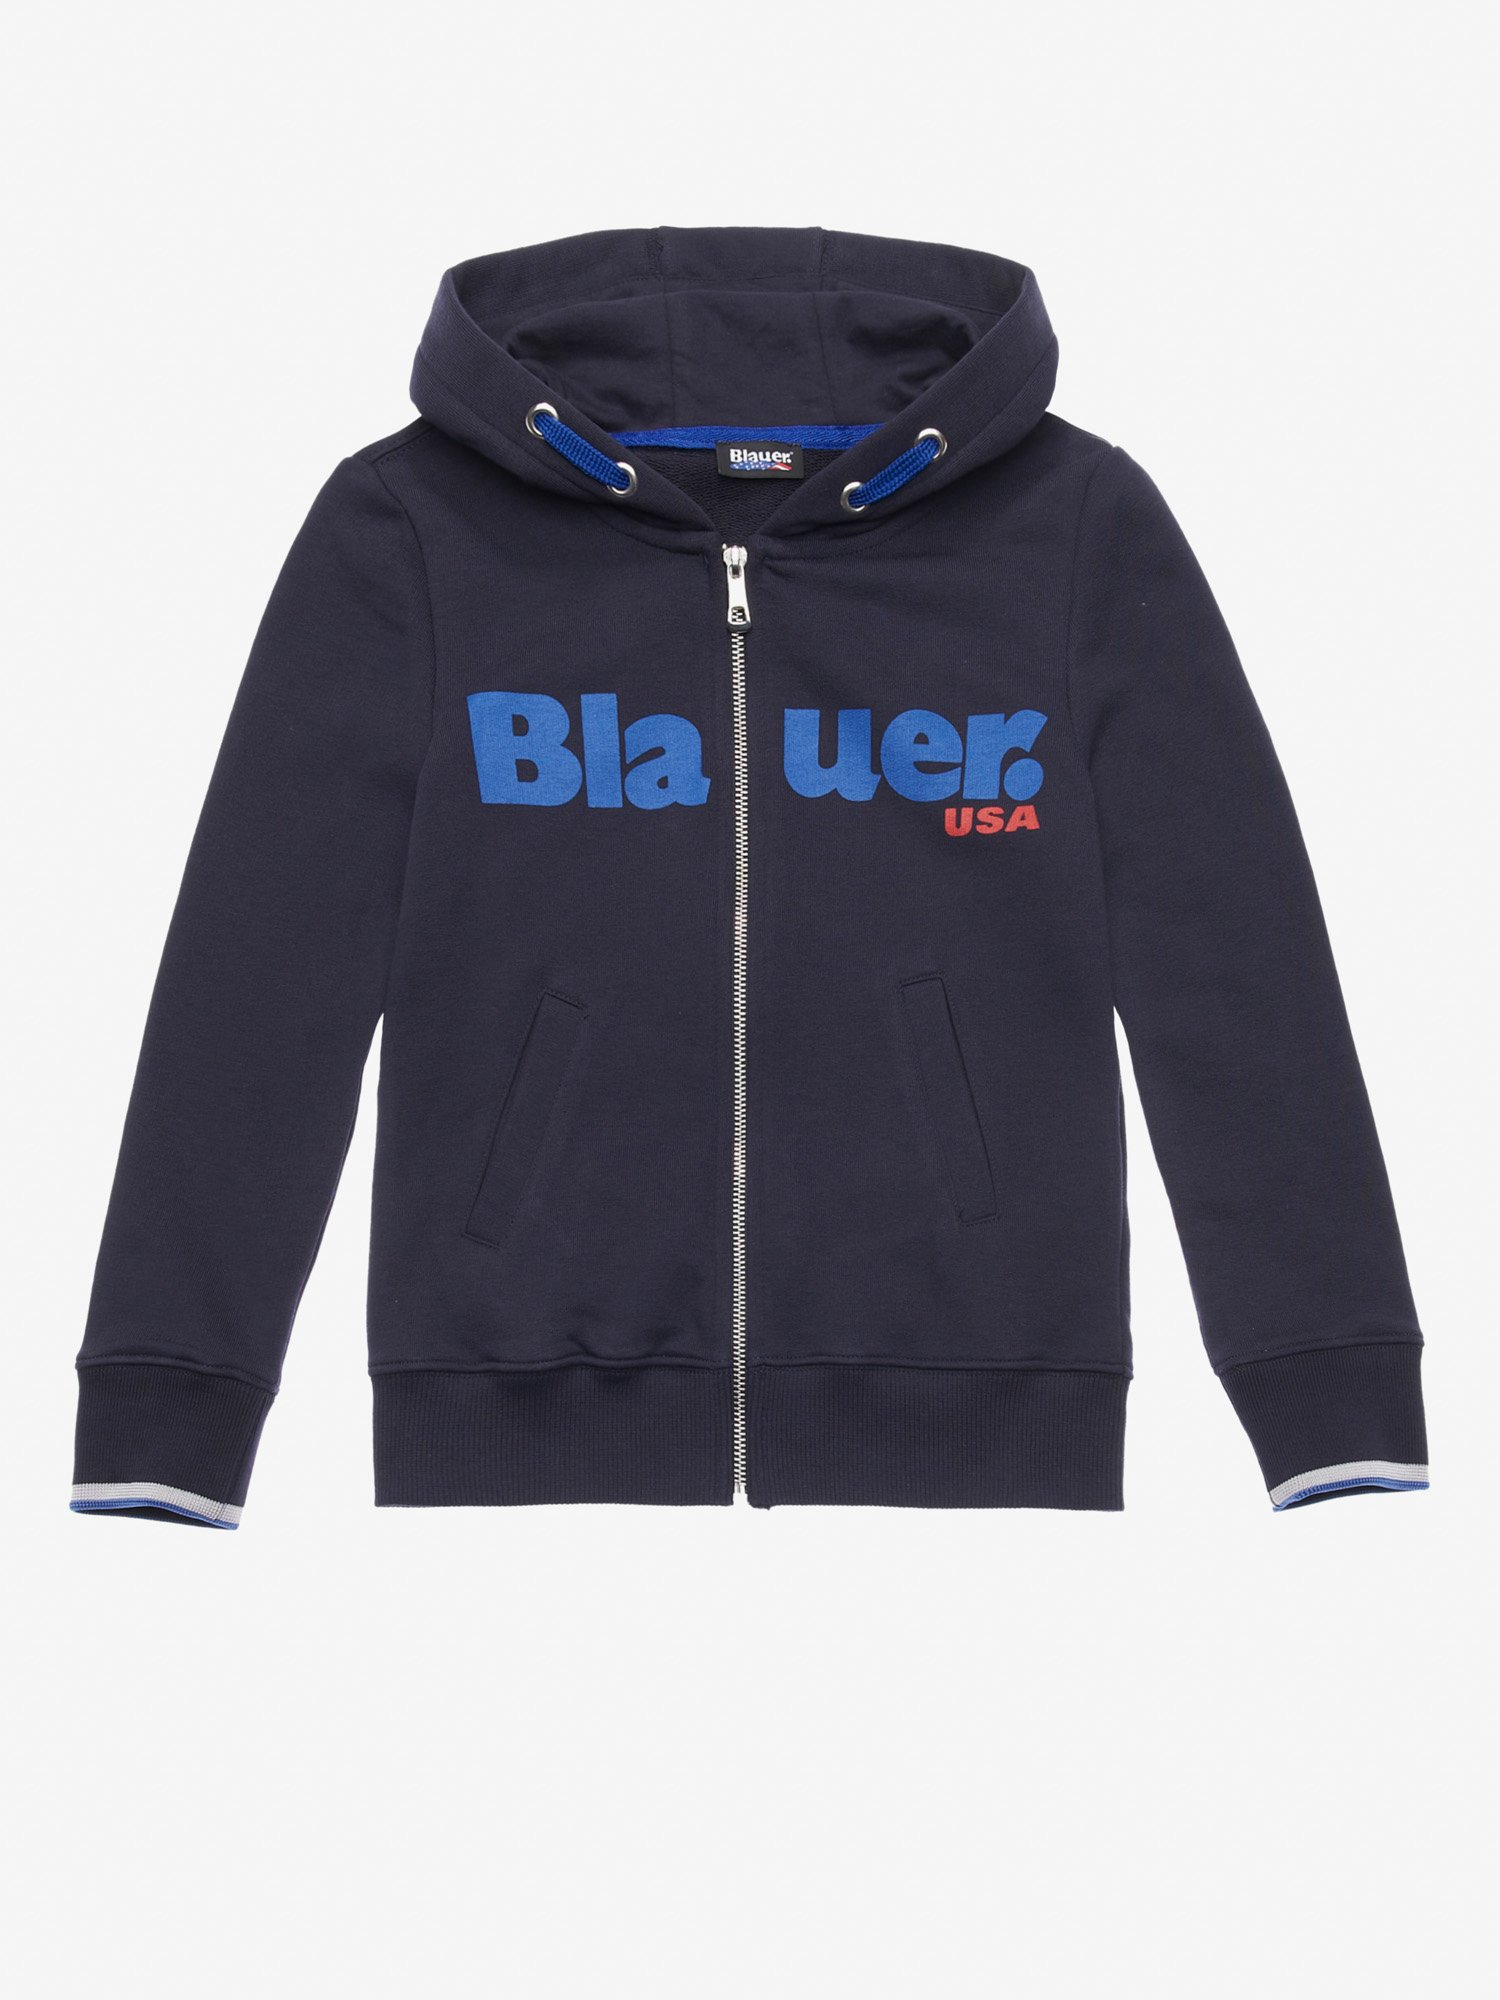 Blauer - JUNIOR OPEN HOODED SWEATSHIRT - blue - Blauer